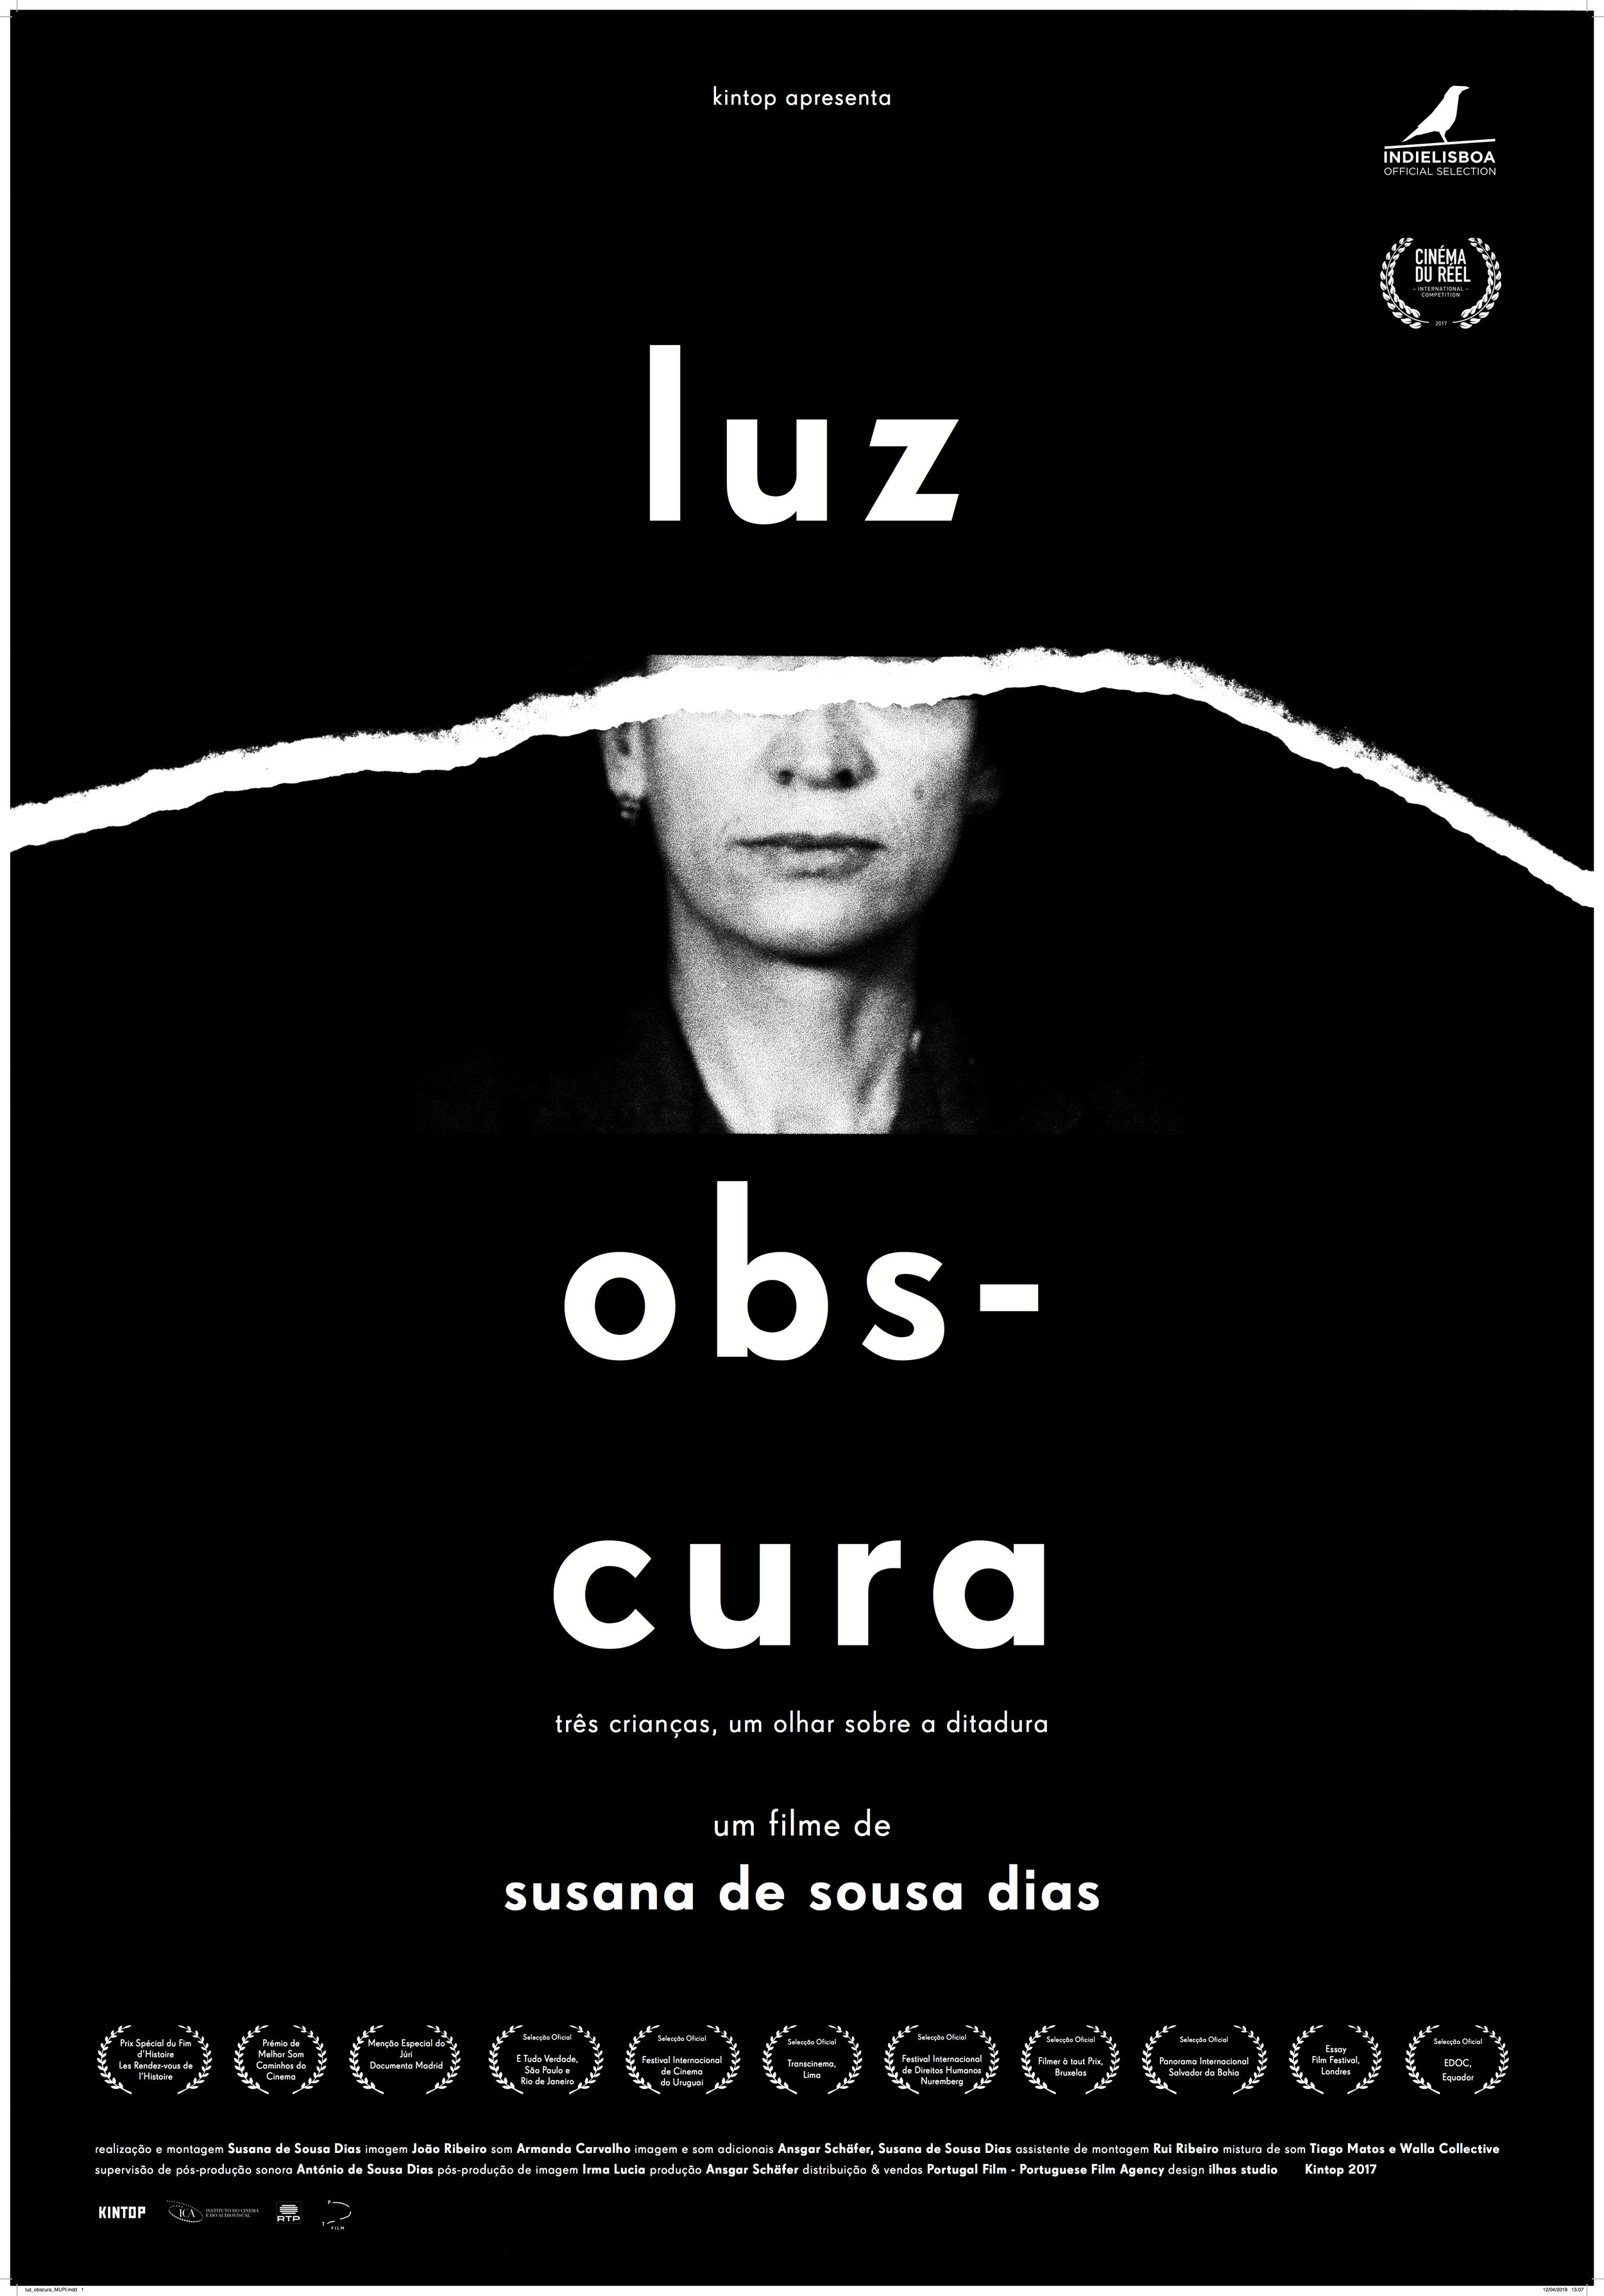 ....LUZ OBSCURA..OBSCURE LIGHT....